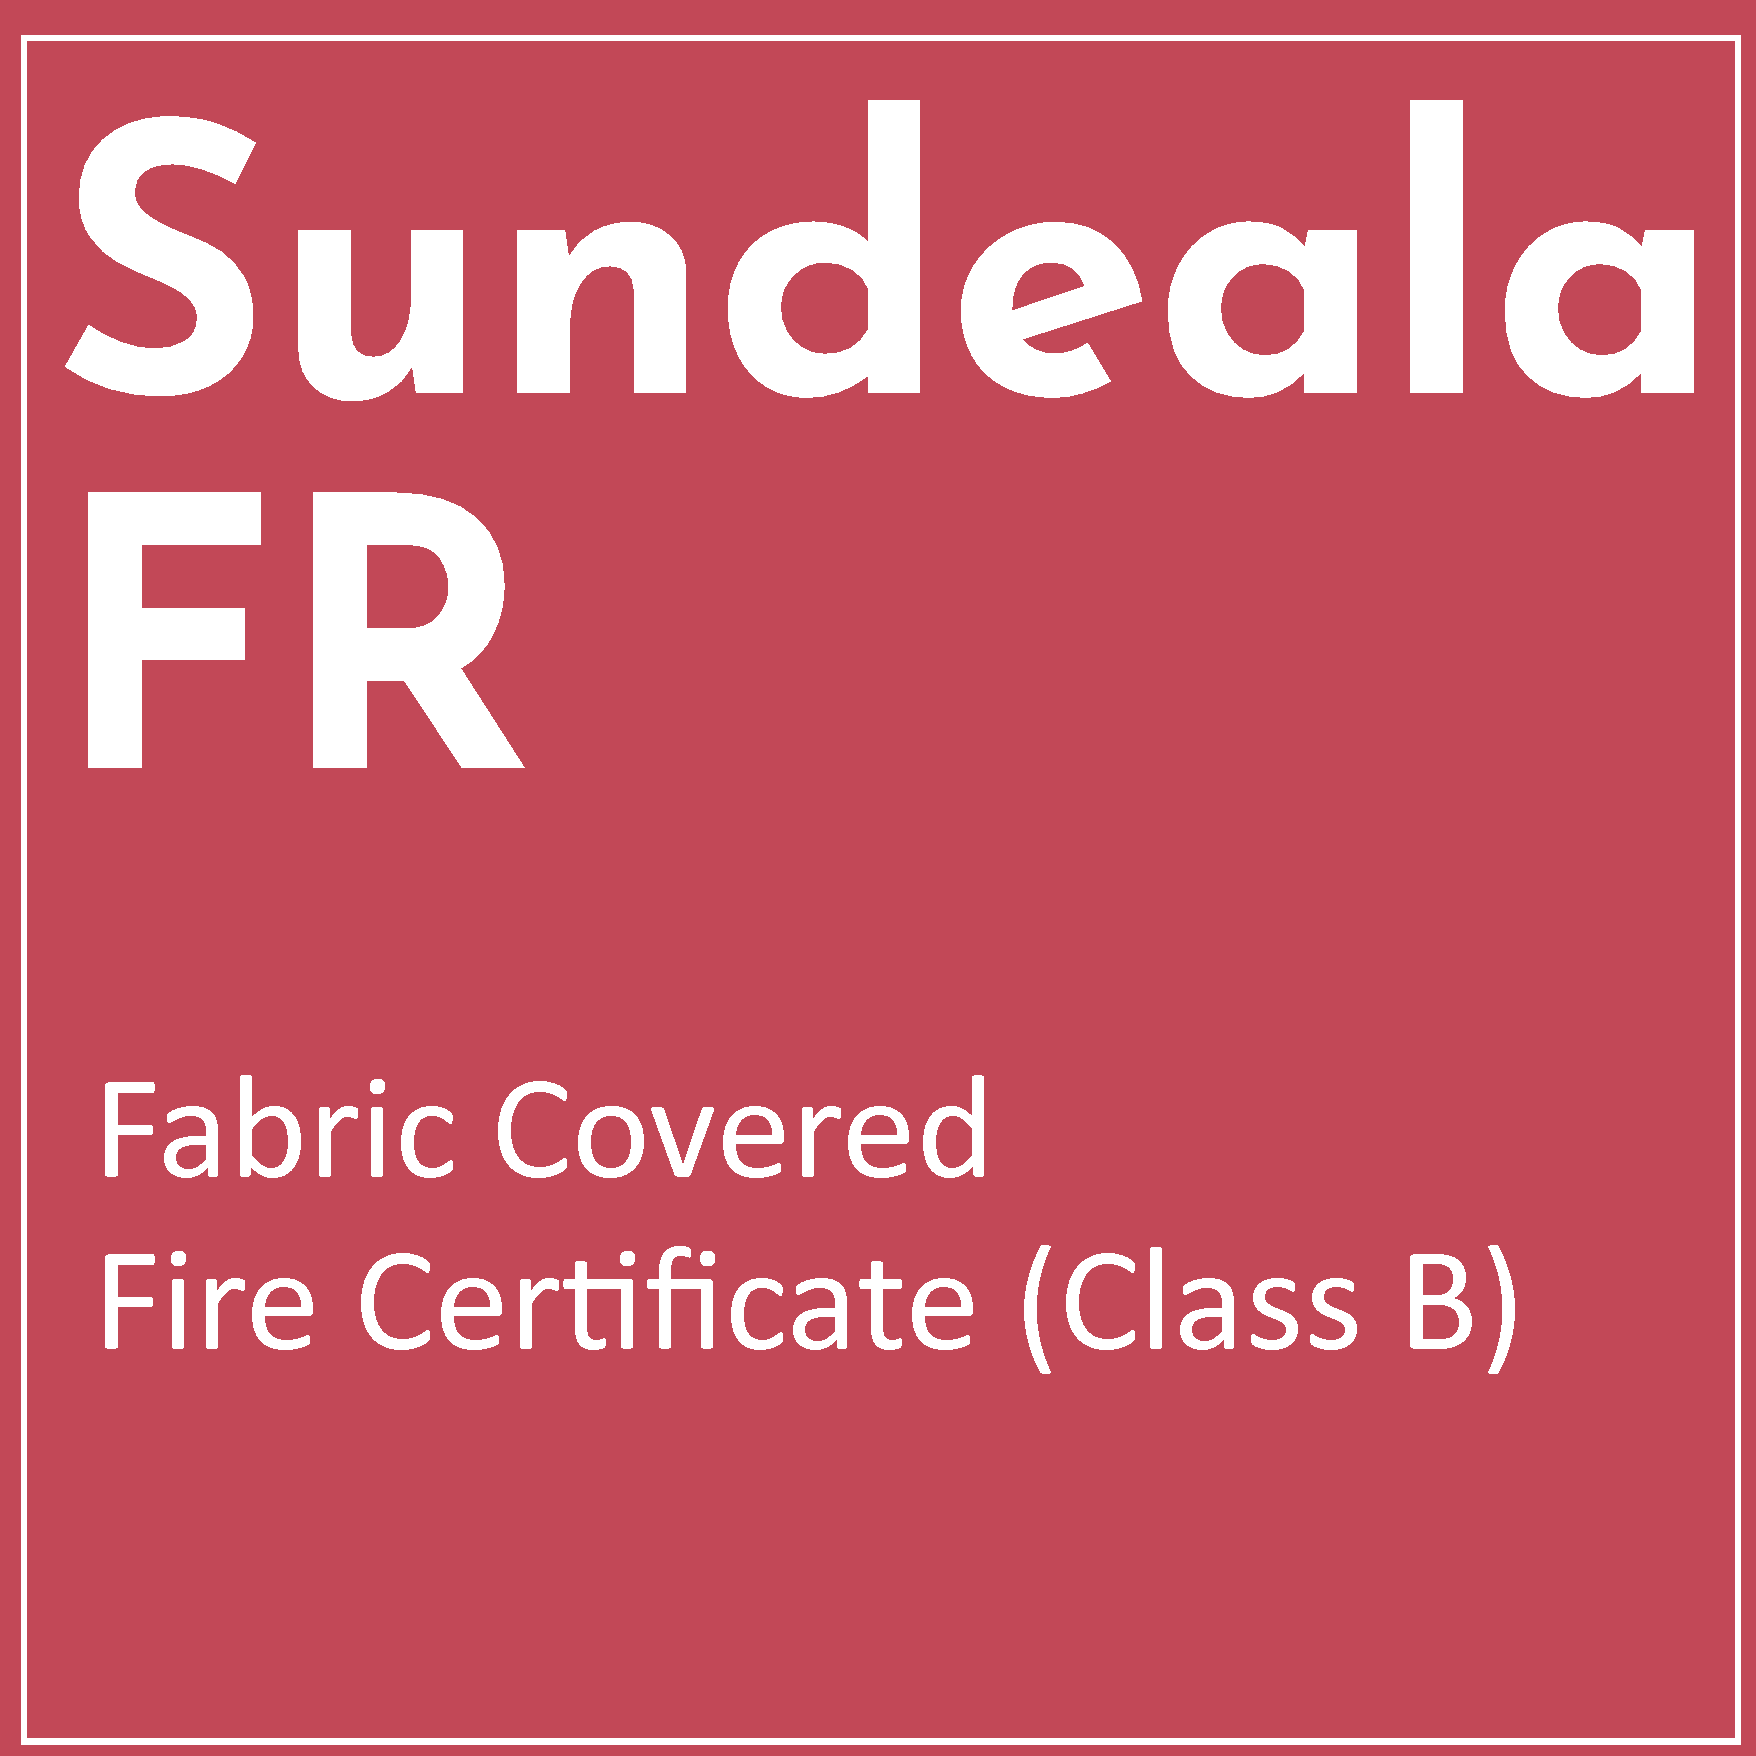 Fire Information for Sundeala FR Fabric Covered Boards